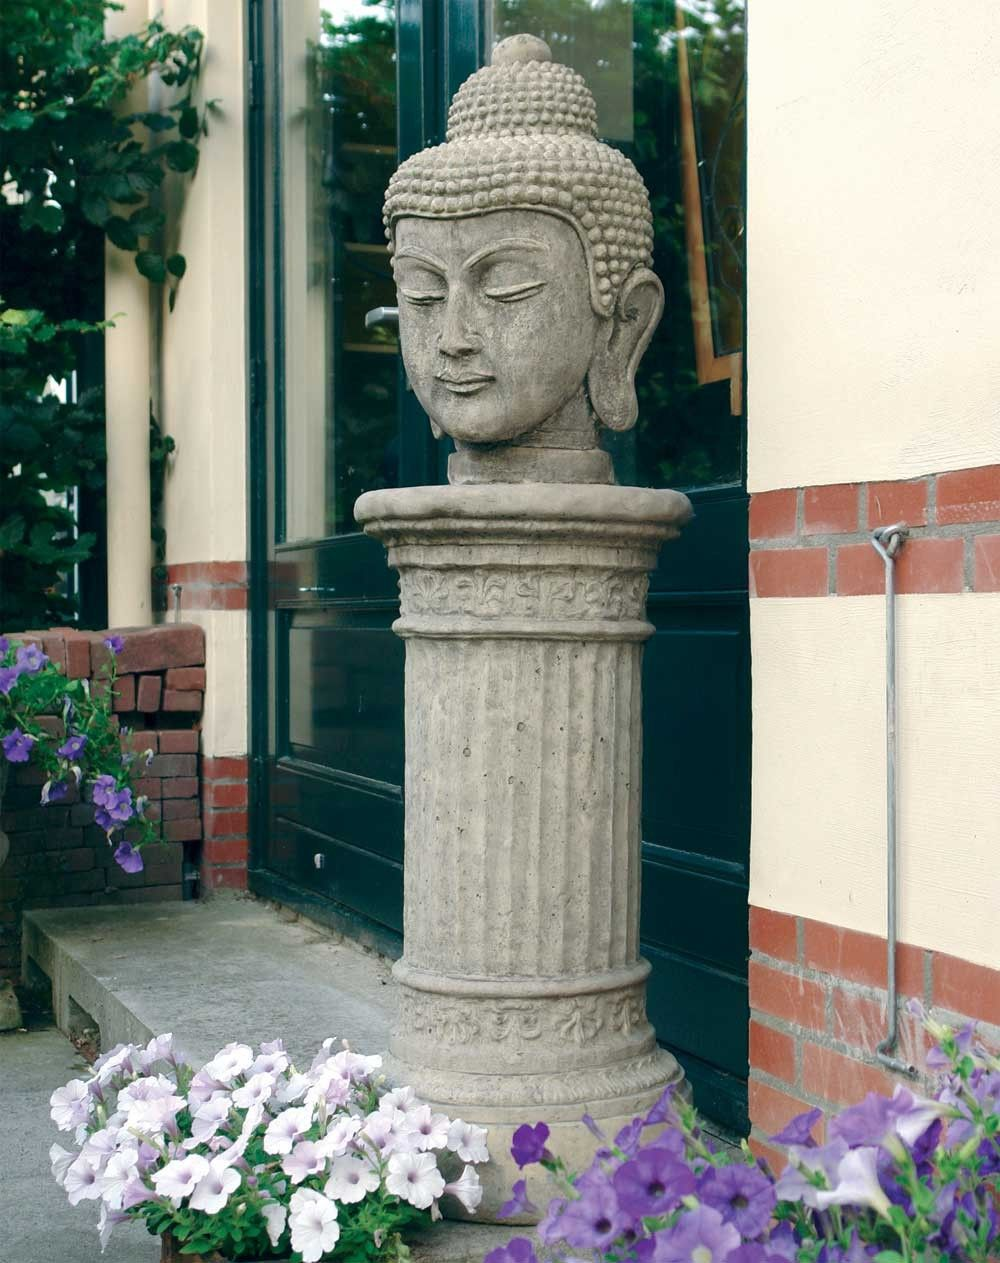 Stone Buddha Head Statue On Plinth Large Garden Sculpture. Buy Now At Http:/